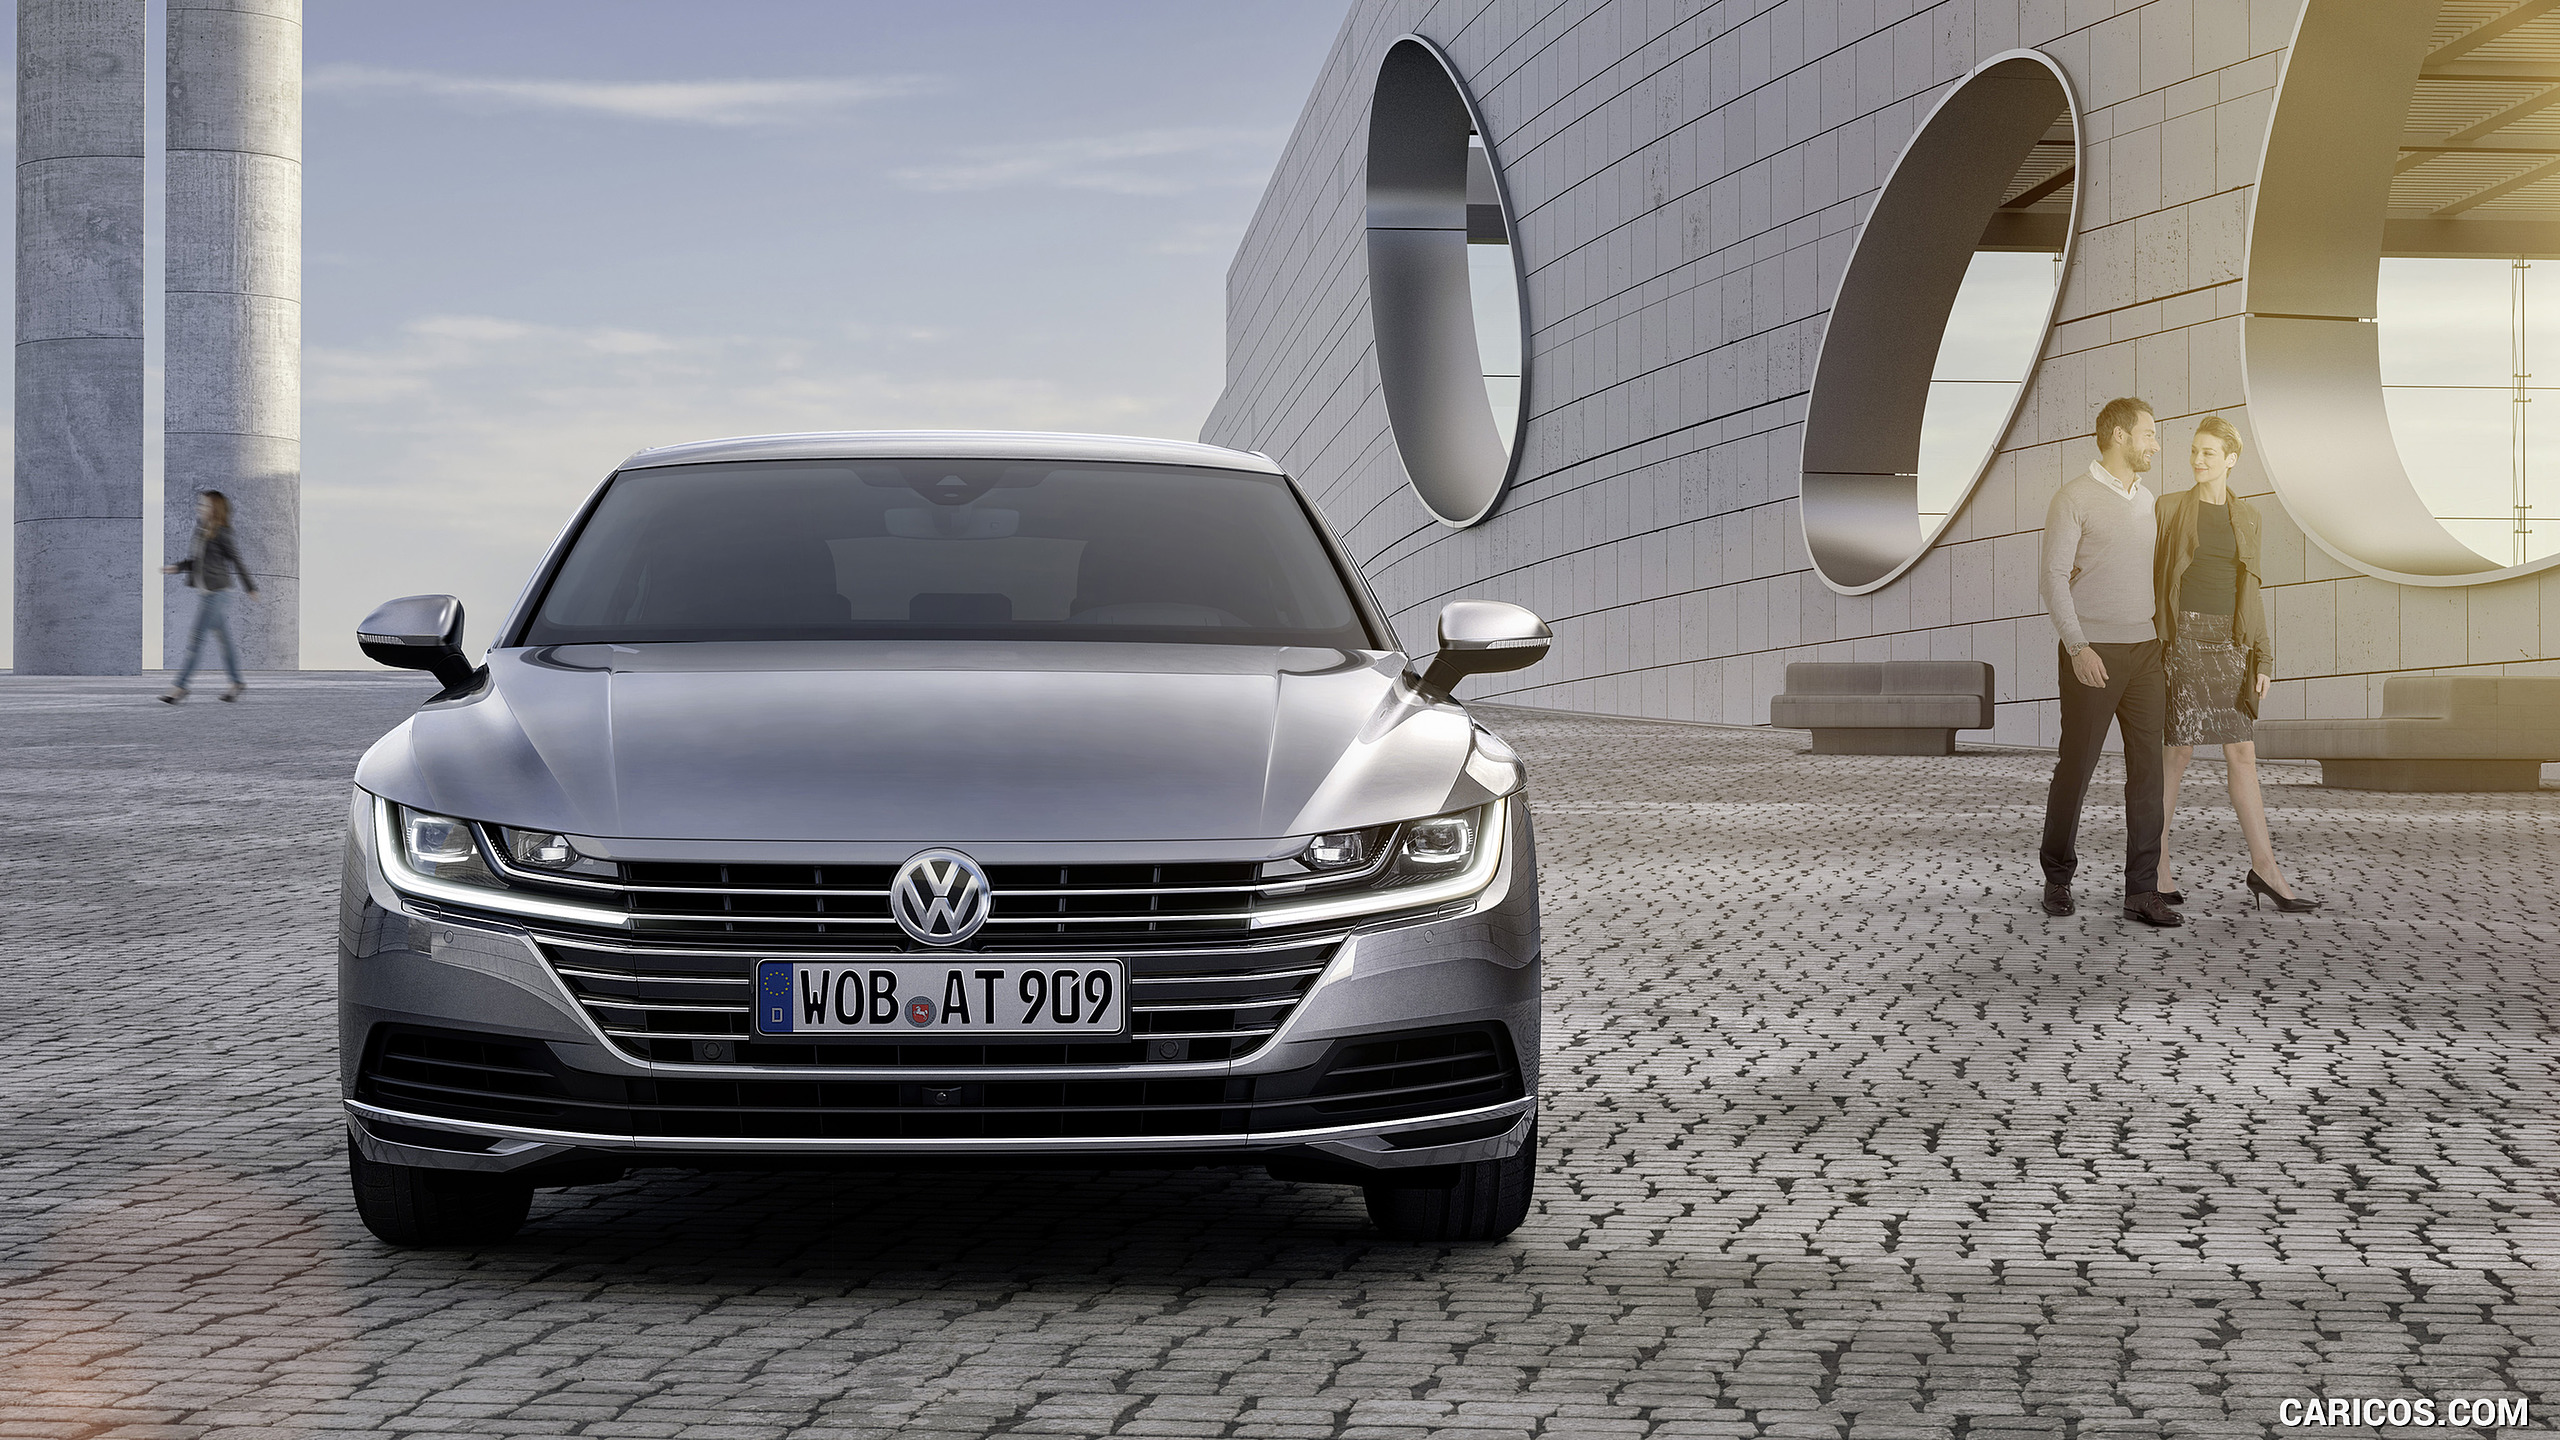 2560x1440 - Volkswagen Arteon Wallpapers 13